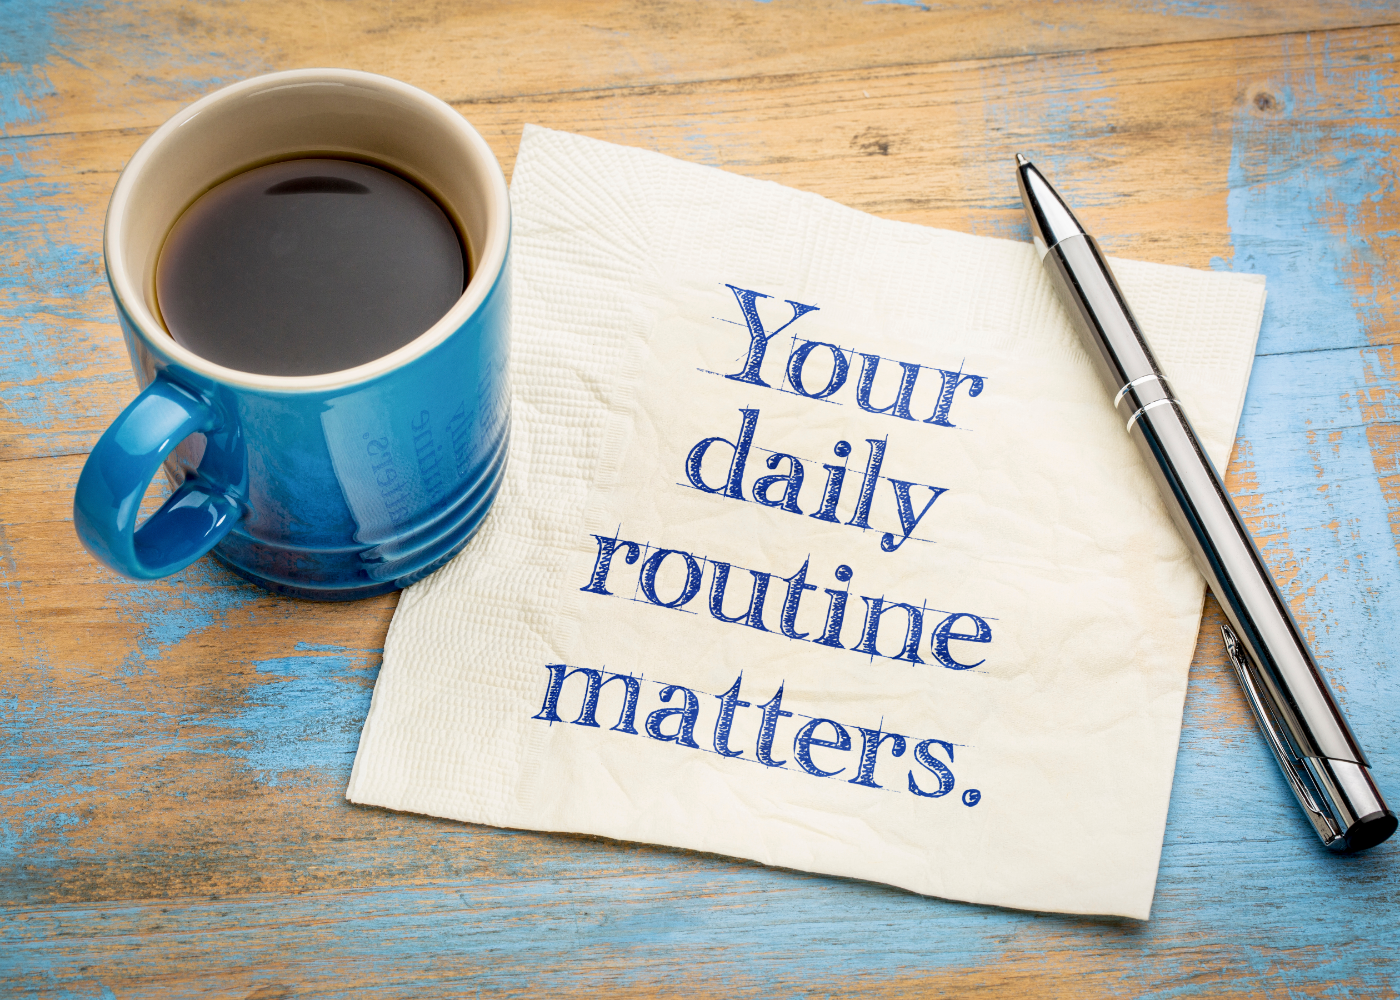 start-of-the-workday routine matters